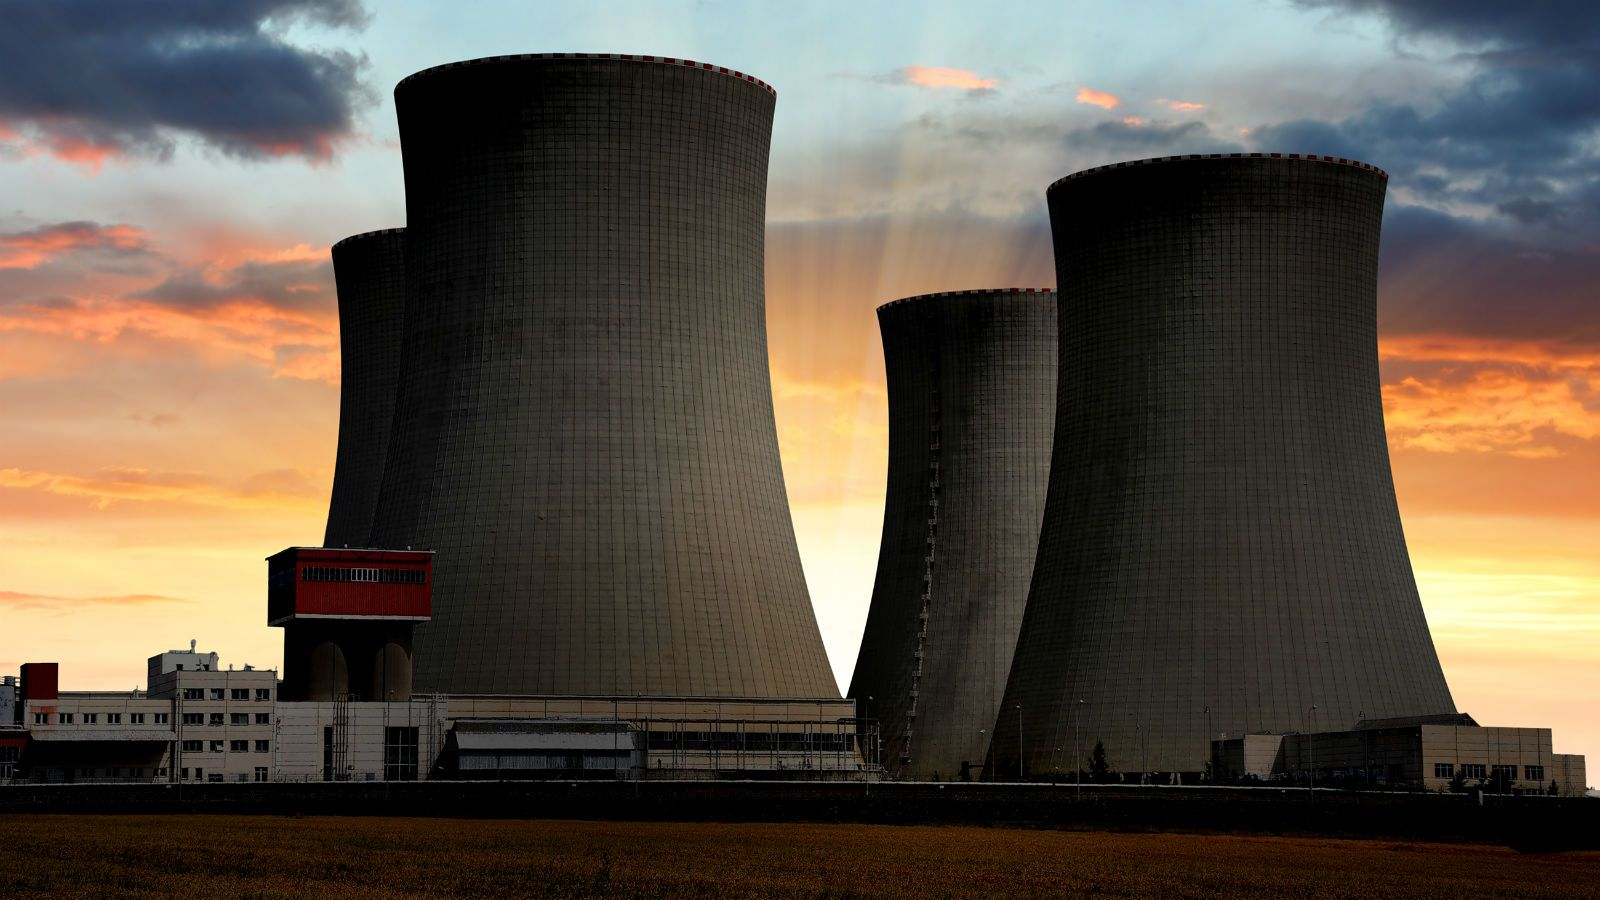 Quad Hyperbolic Cooling Towers At A Huge Electric Power Plant